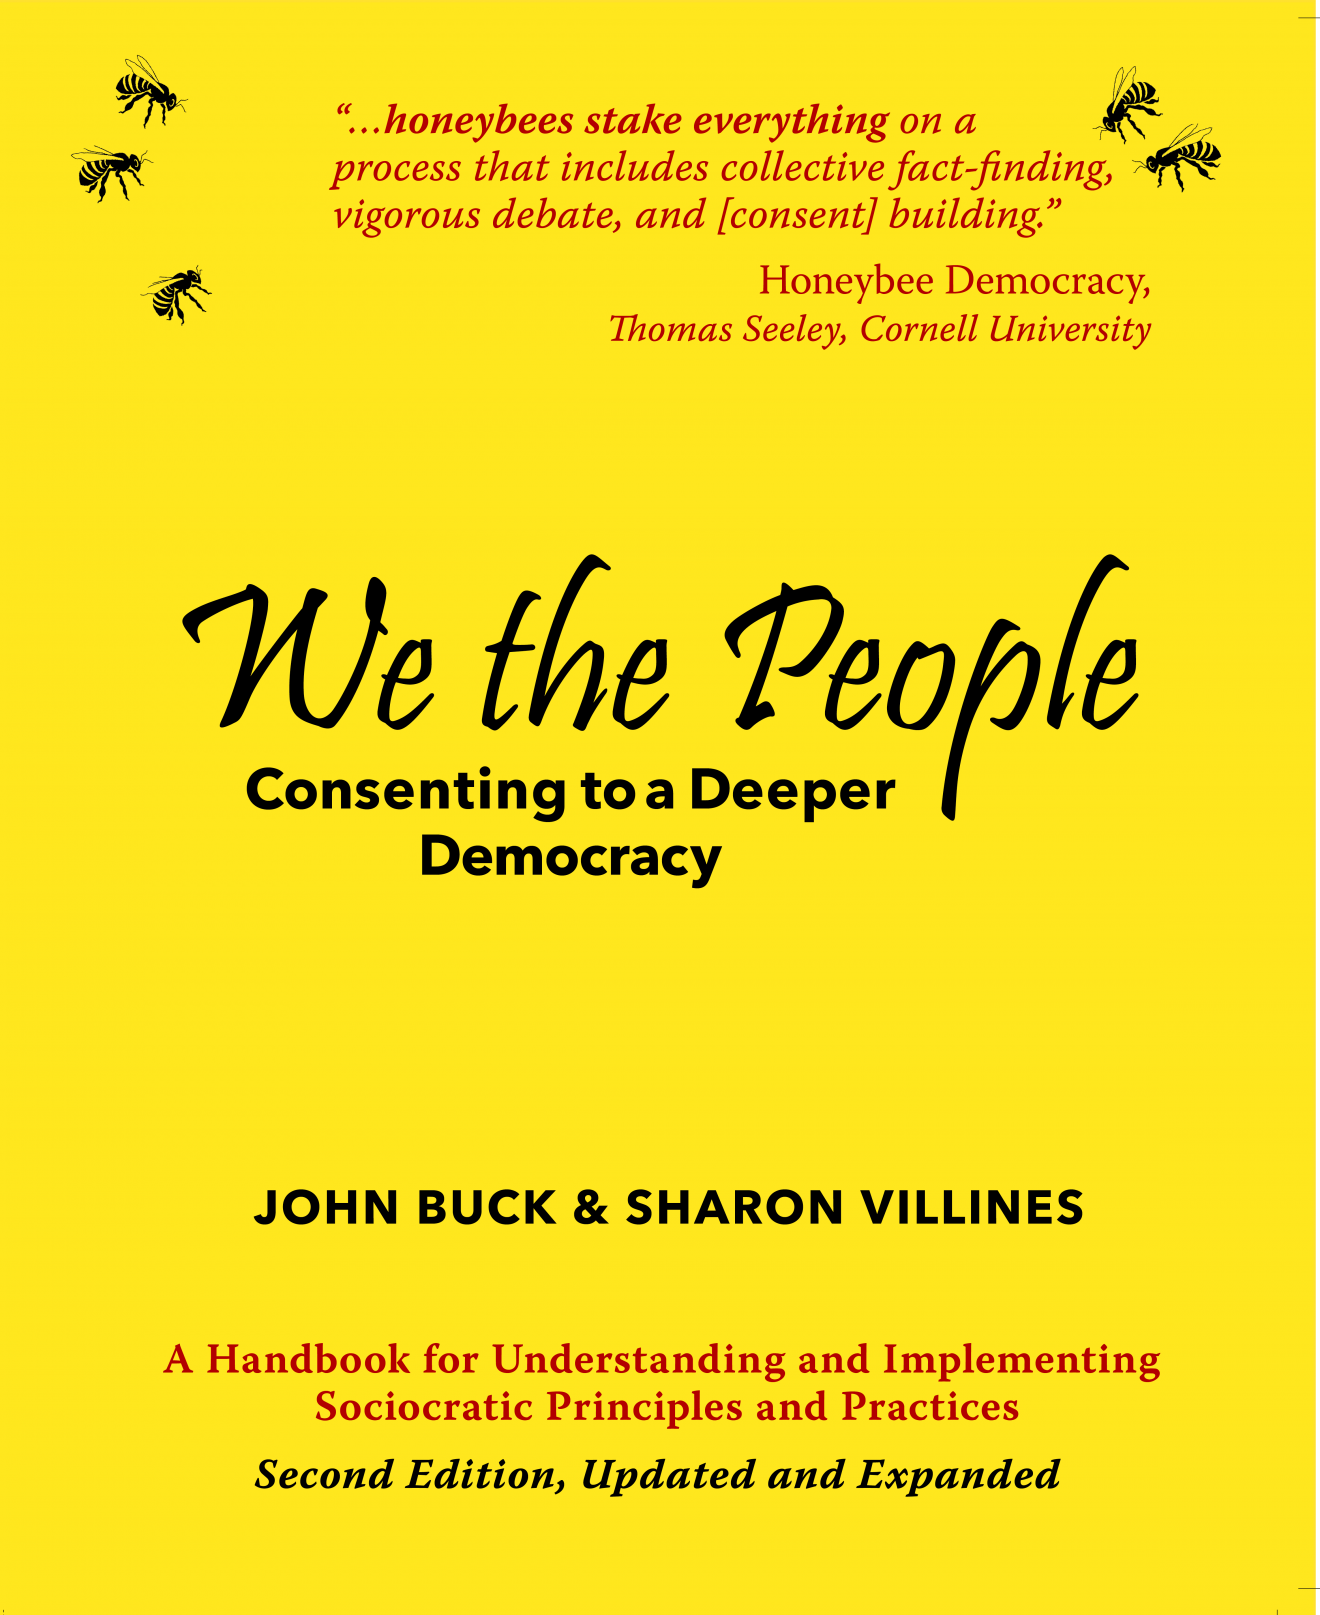 We the People: Consenting to a Deeper Democracy, 2nd edition